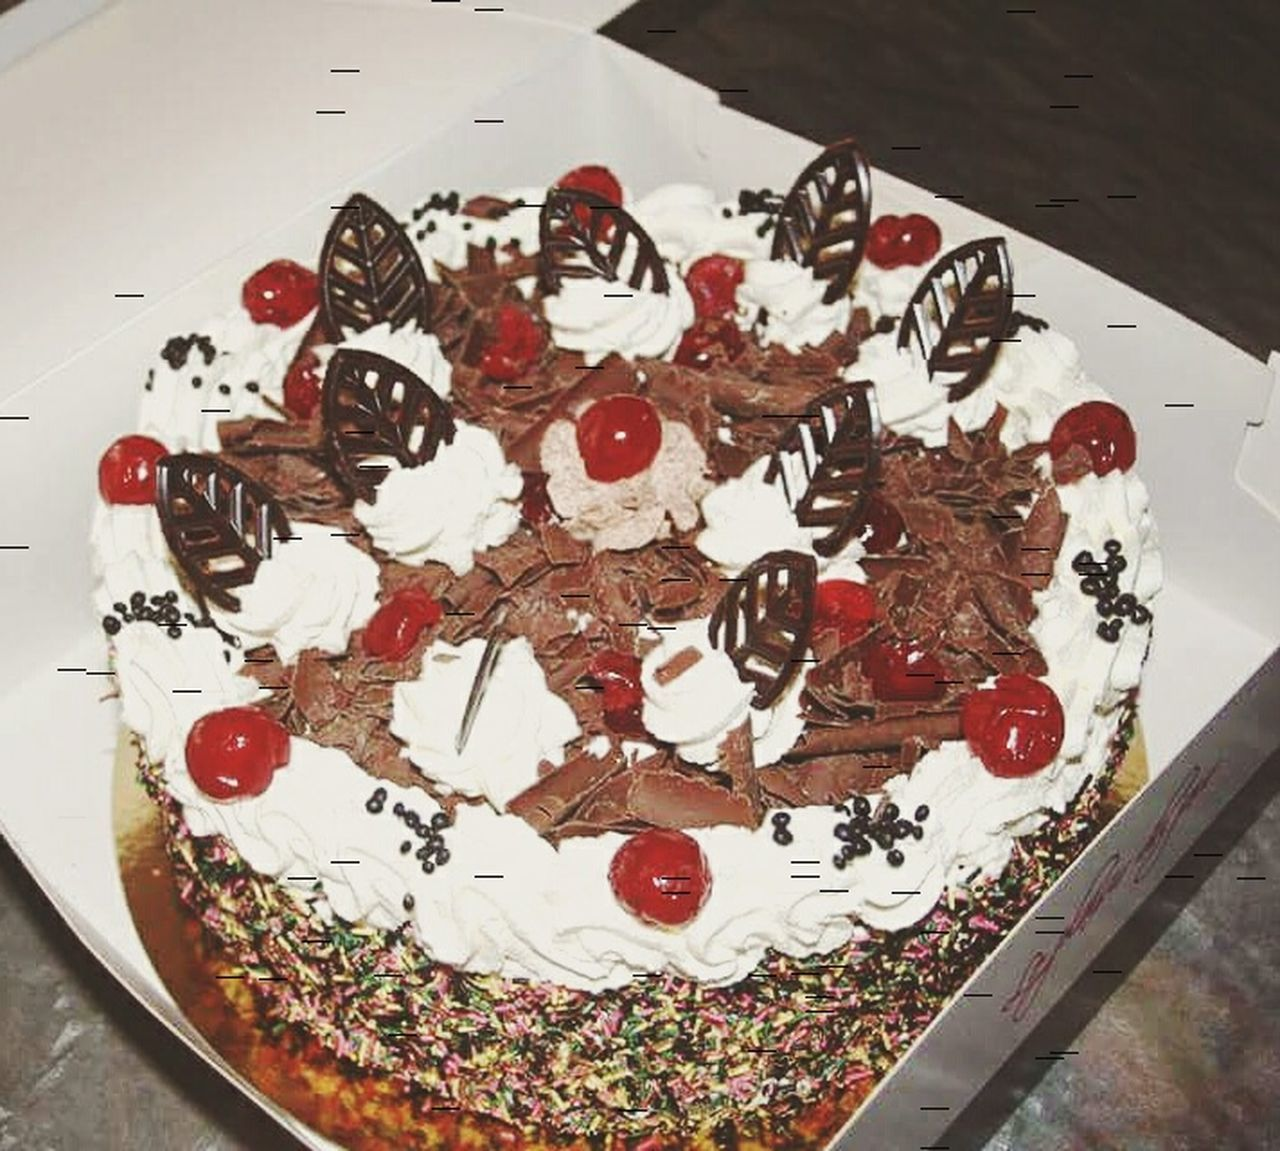 Blackforest Blackforestcake Patisserie Patisseriehongroise Pastrylover Pastry Cakelovers Foodphotography Homemade Cake